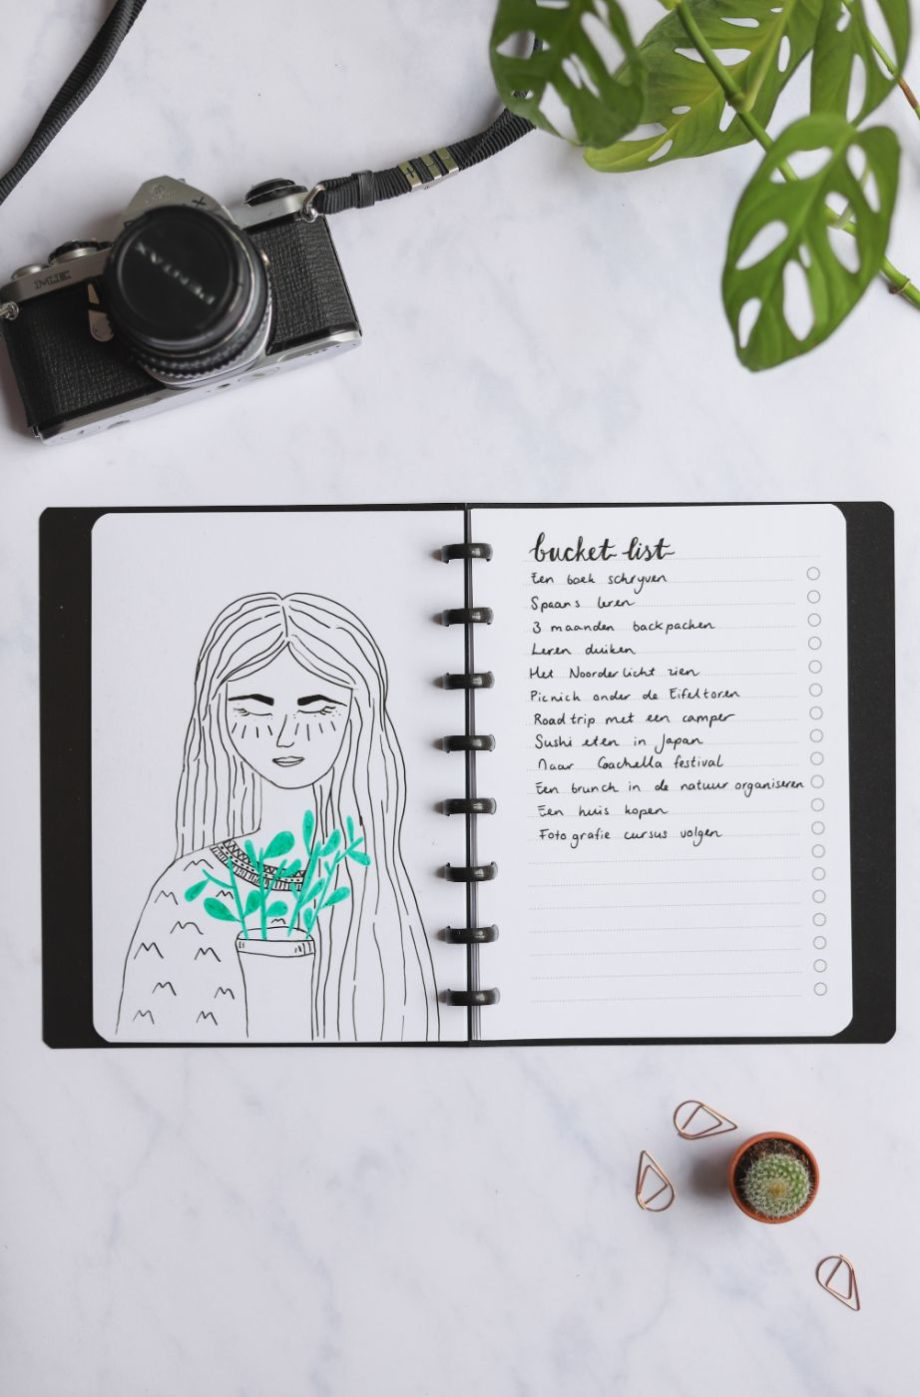 Erasable blank page with drawing of girl and erasable to-do list next to assorted items on marble background